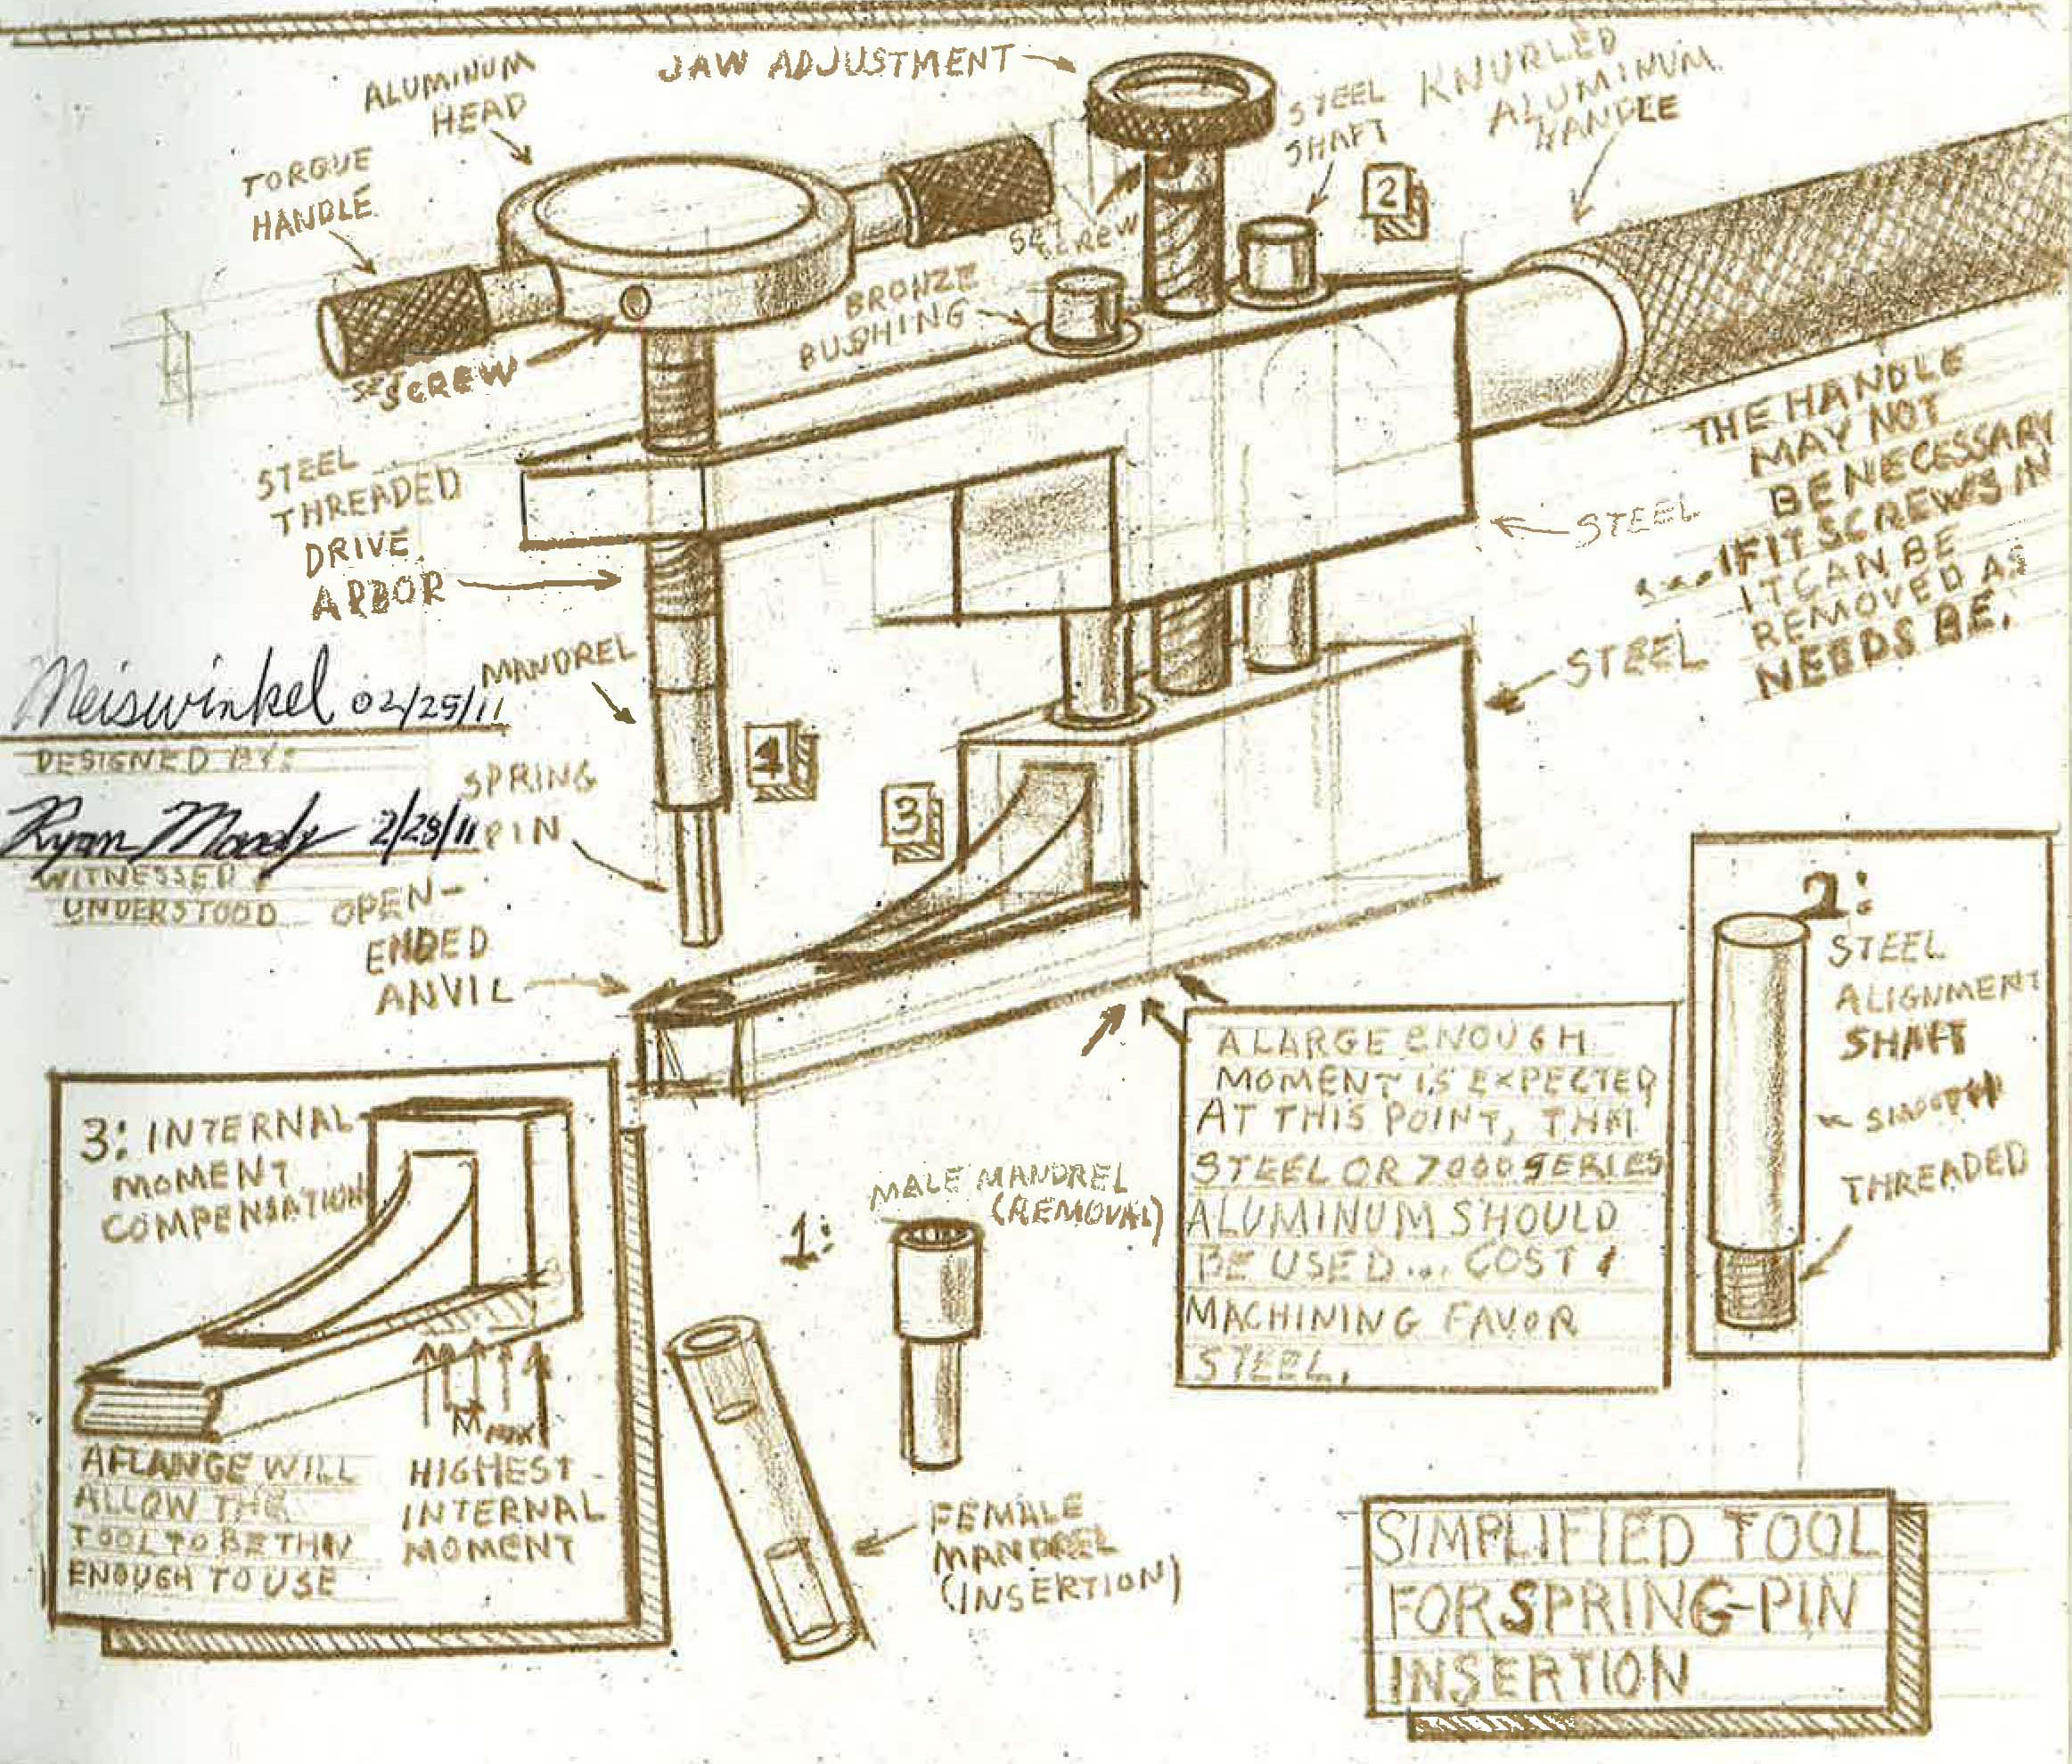 Ideation Meiswinkel Automata Schematic Maker Jam And Jelly Diagram Image In Time Display For Rolling Ball Clock Part Of My Masters Project